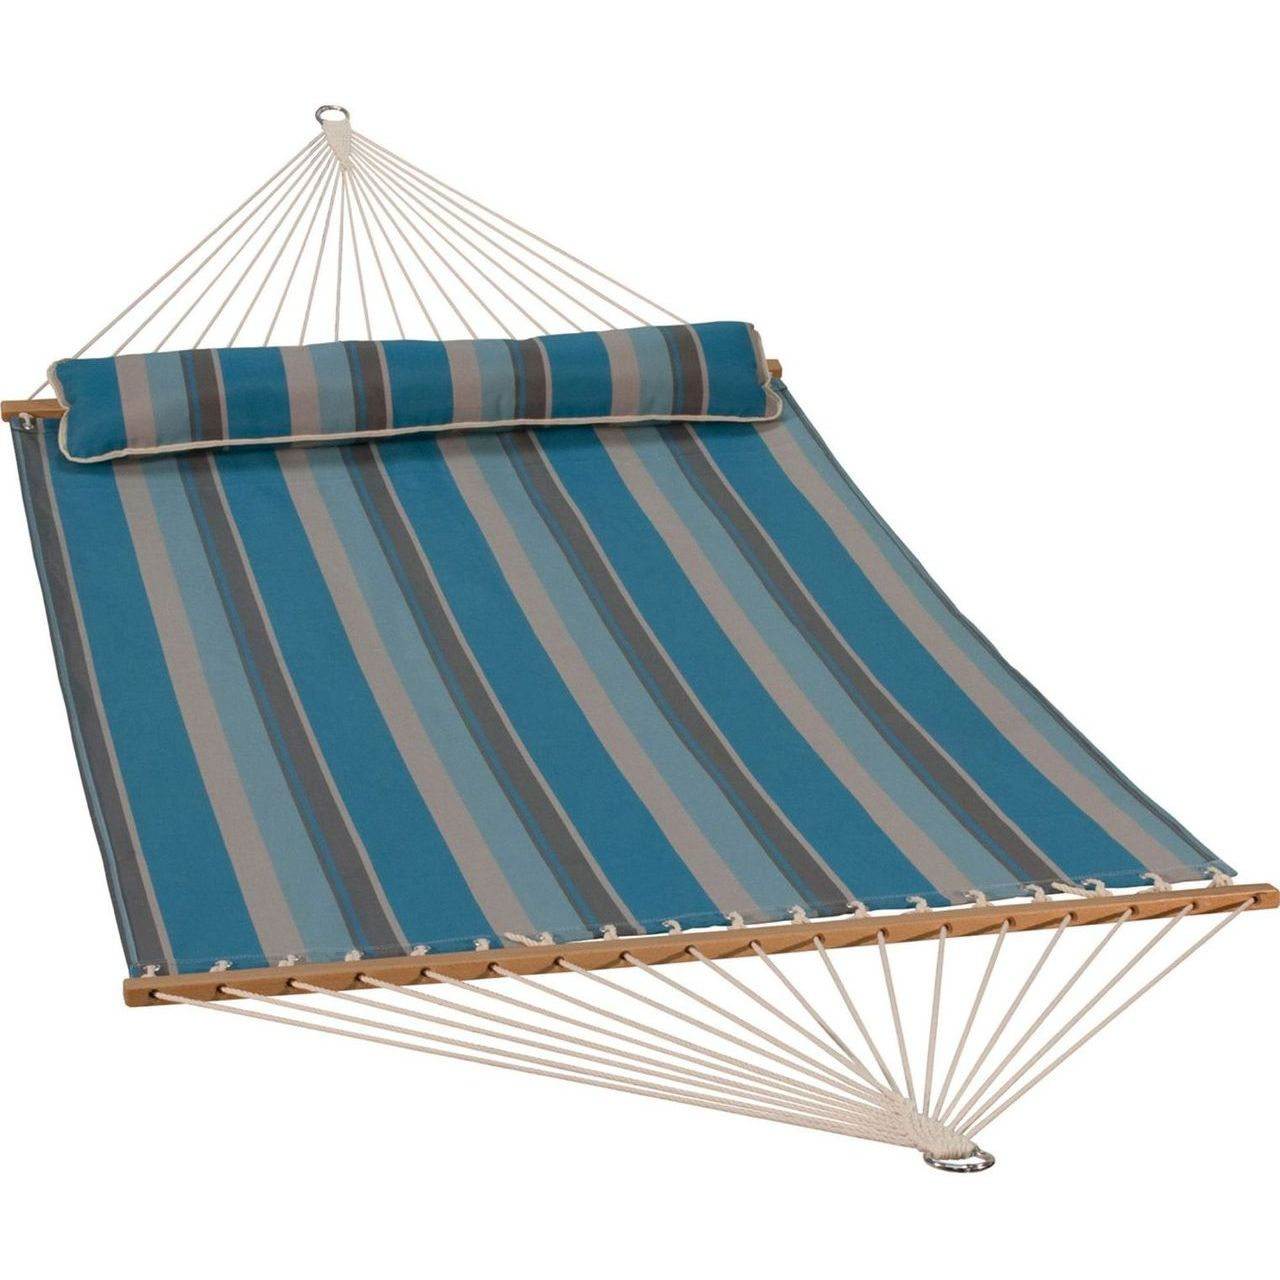 Gleason Quick Dry Hammock With Bolster - Ocean Stripe